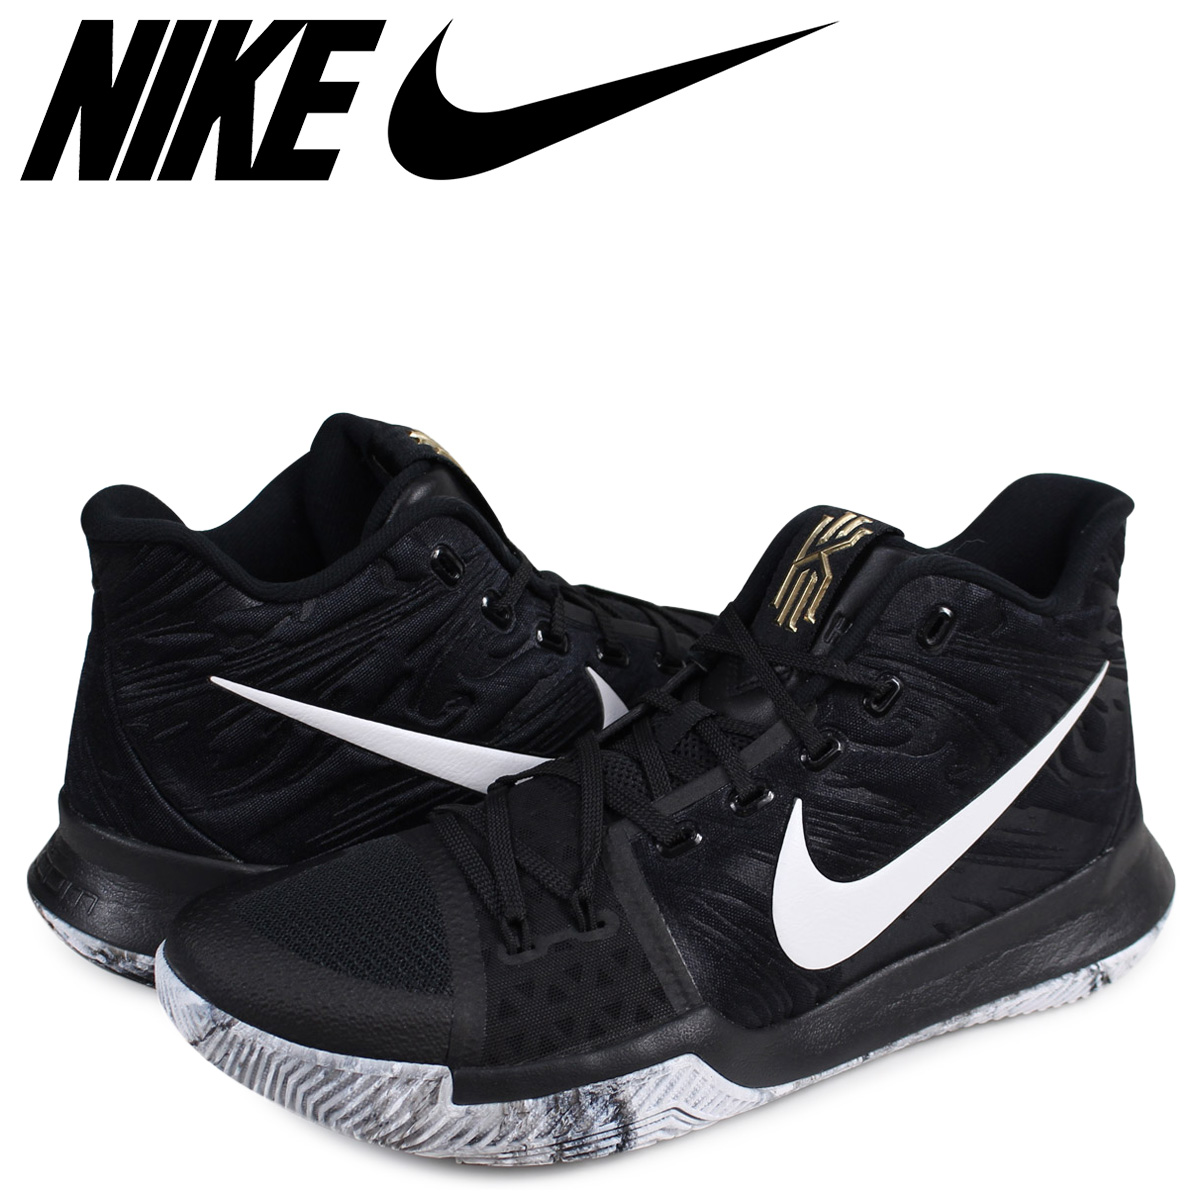 768a8ca6bb7b Sugar Online Shop  NIKE Nike chi Lee 3 sneakers men KYRIE 3 BHM ...